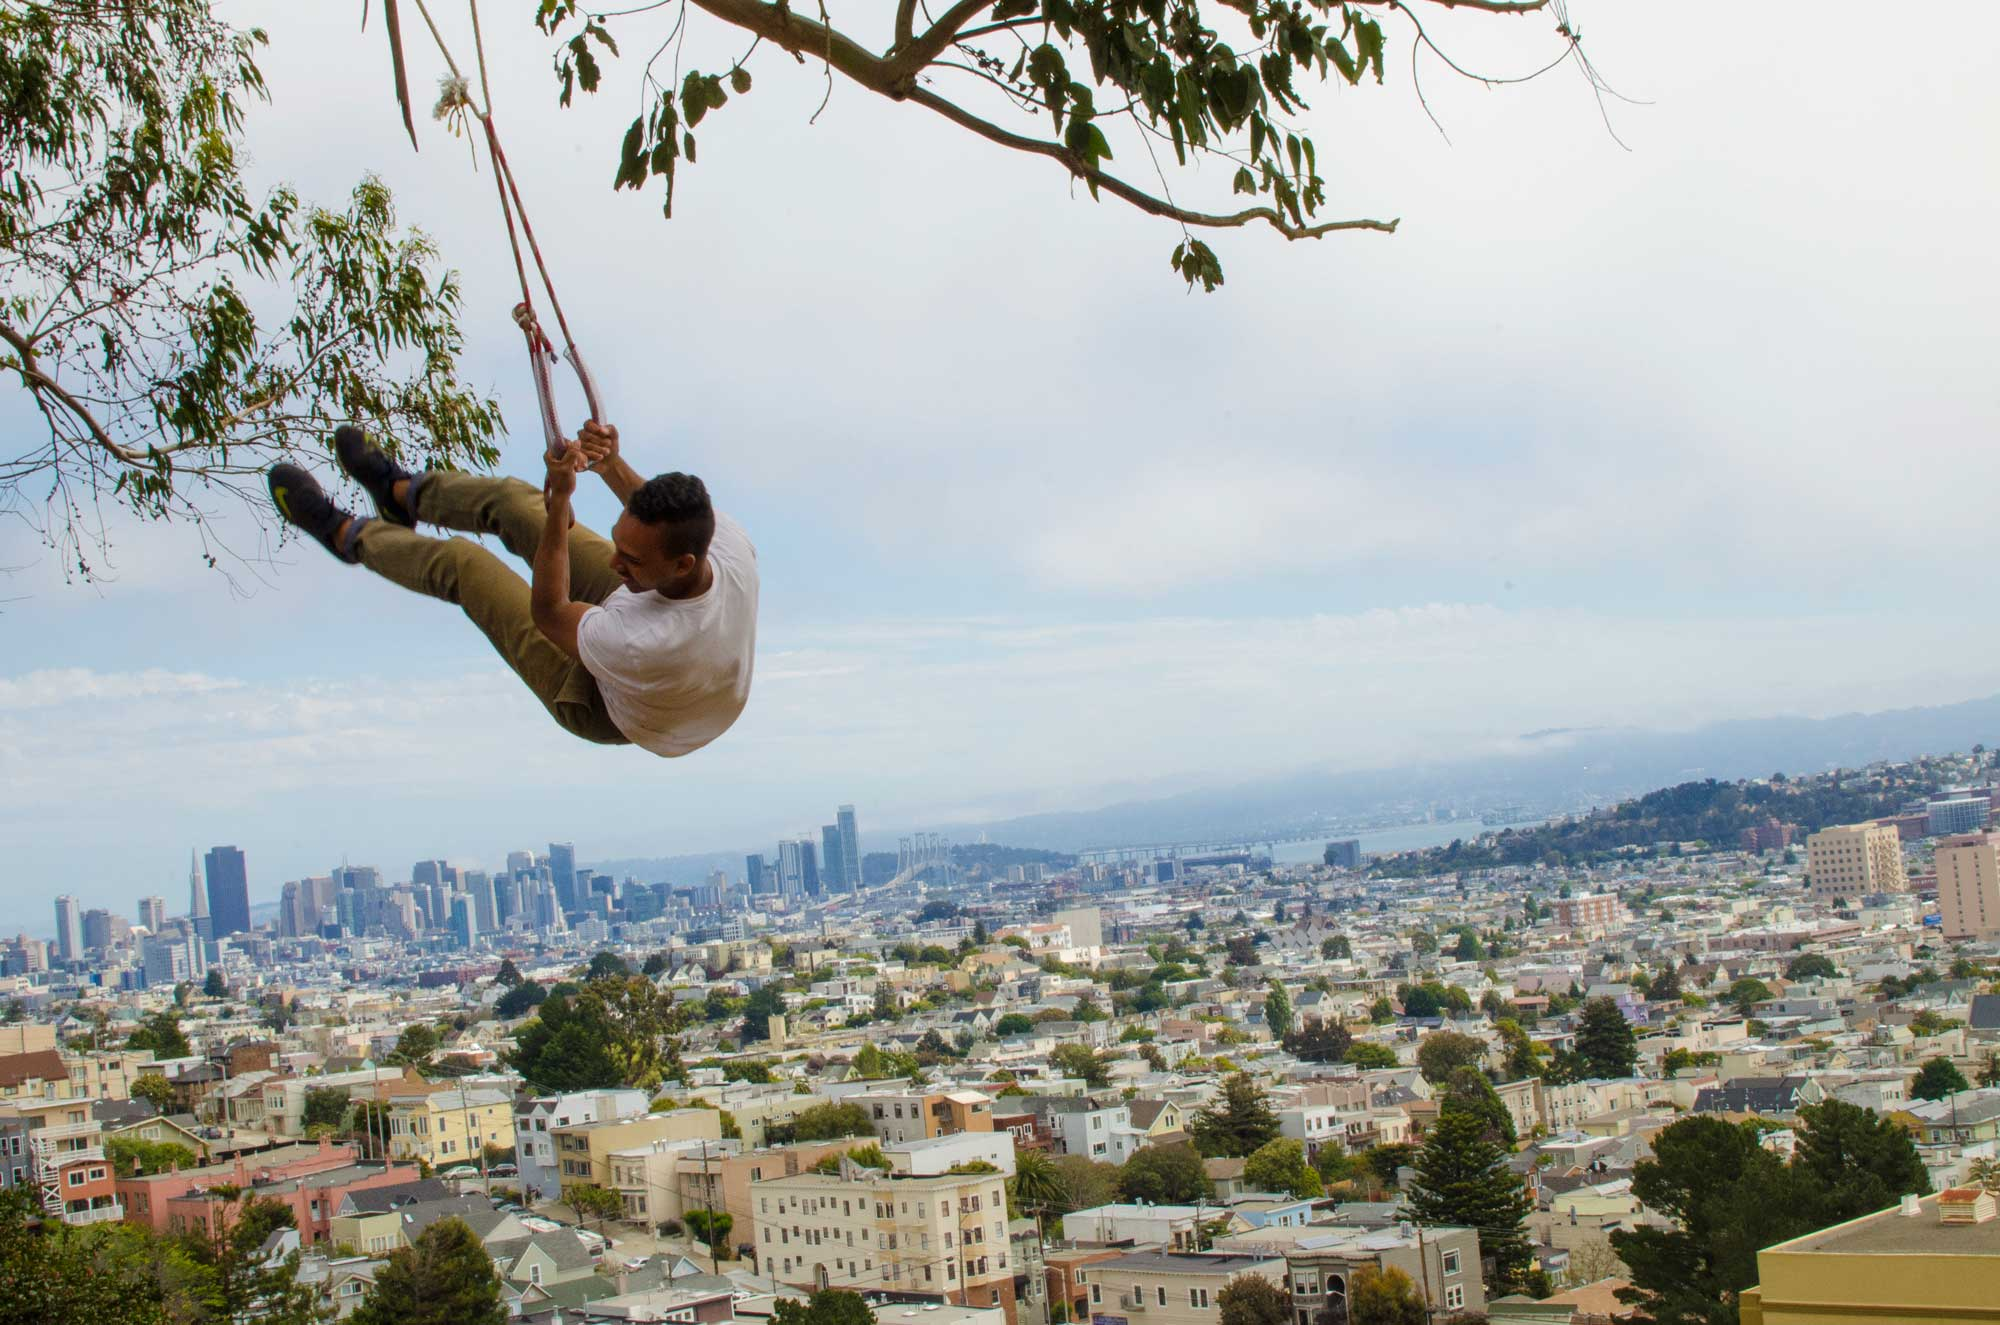 Billy Goat Hill Park is a steep, rugged park at the top of a hill between 30th and Beacon Streets. A swing waits at the top for those who want some excitement with their views.